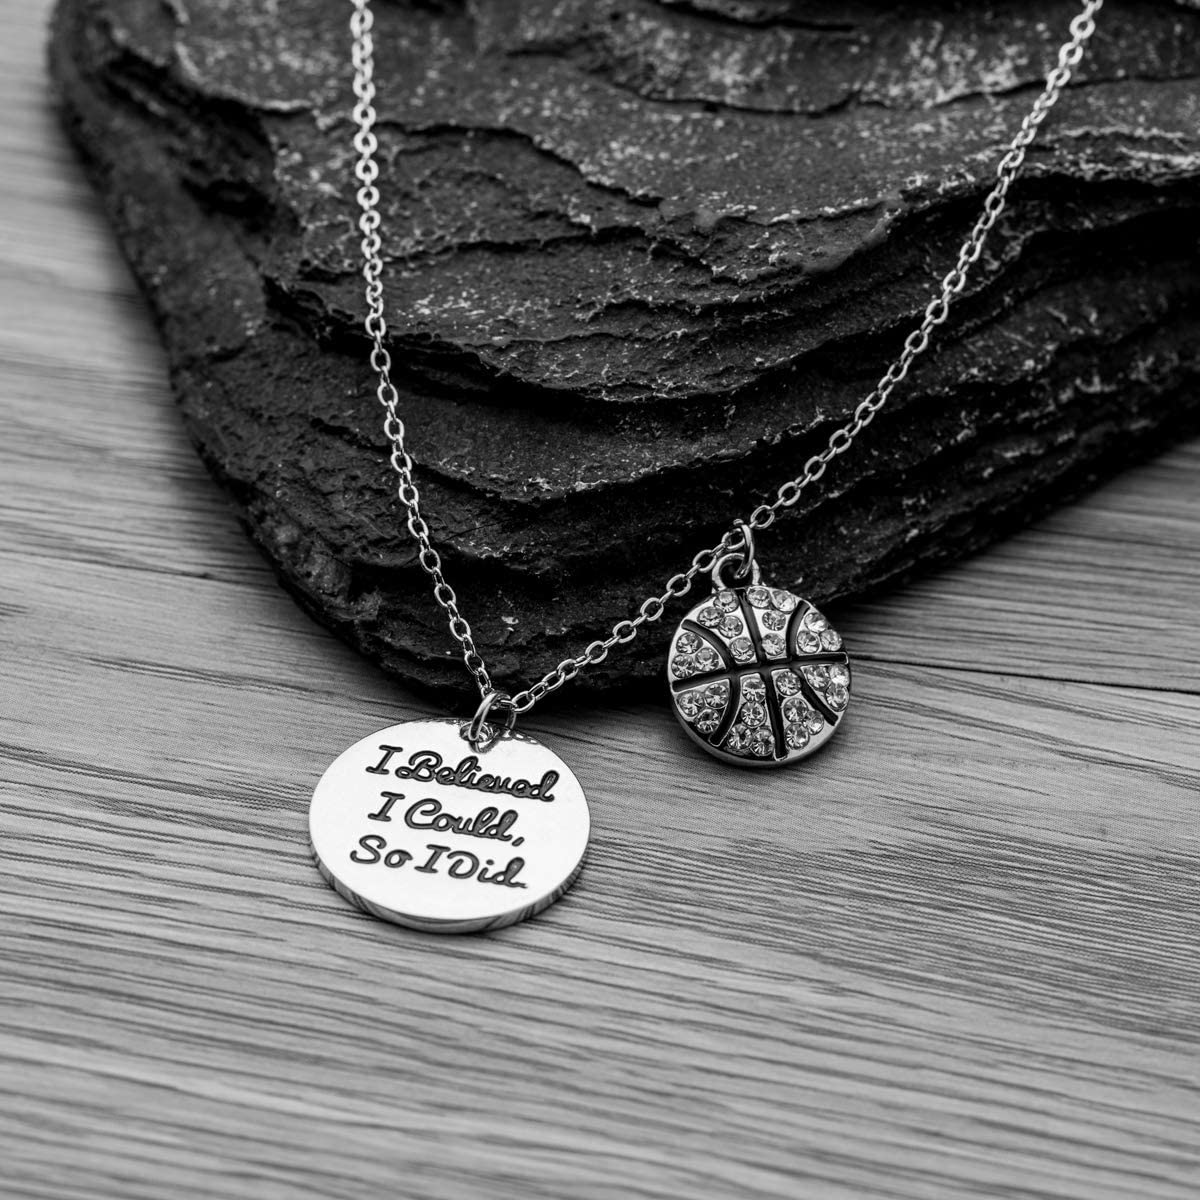 Basketball Gifts Sportybella Basketball Necklace Basketball Charm Necklace for Female Basketball Players Basketball I Believed I Could So I Did Jewelry